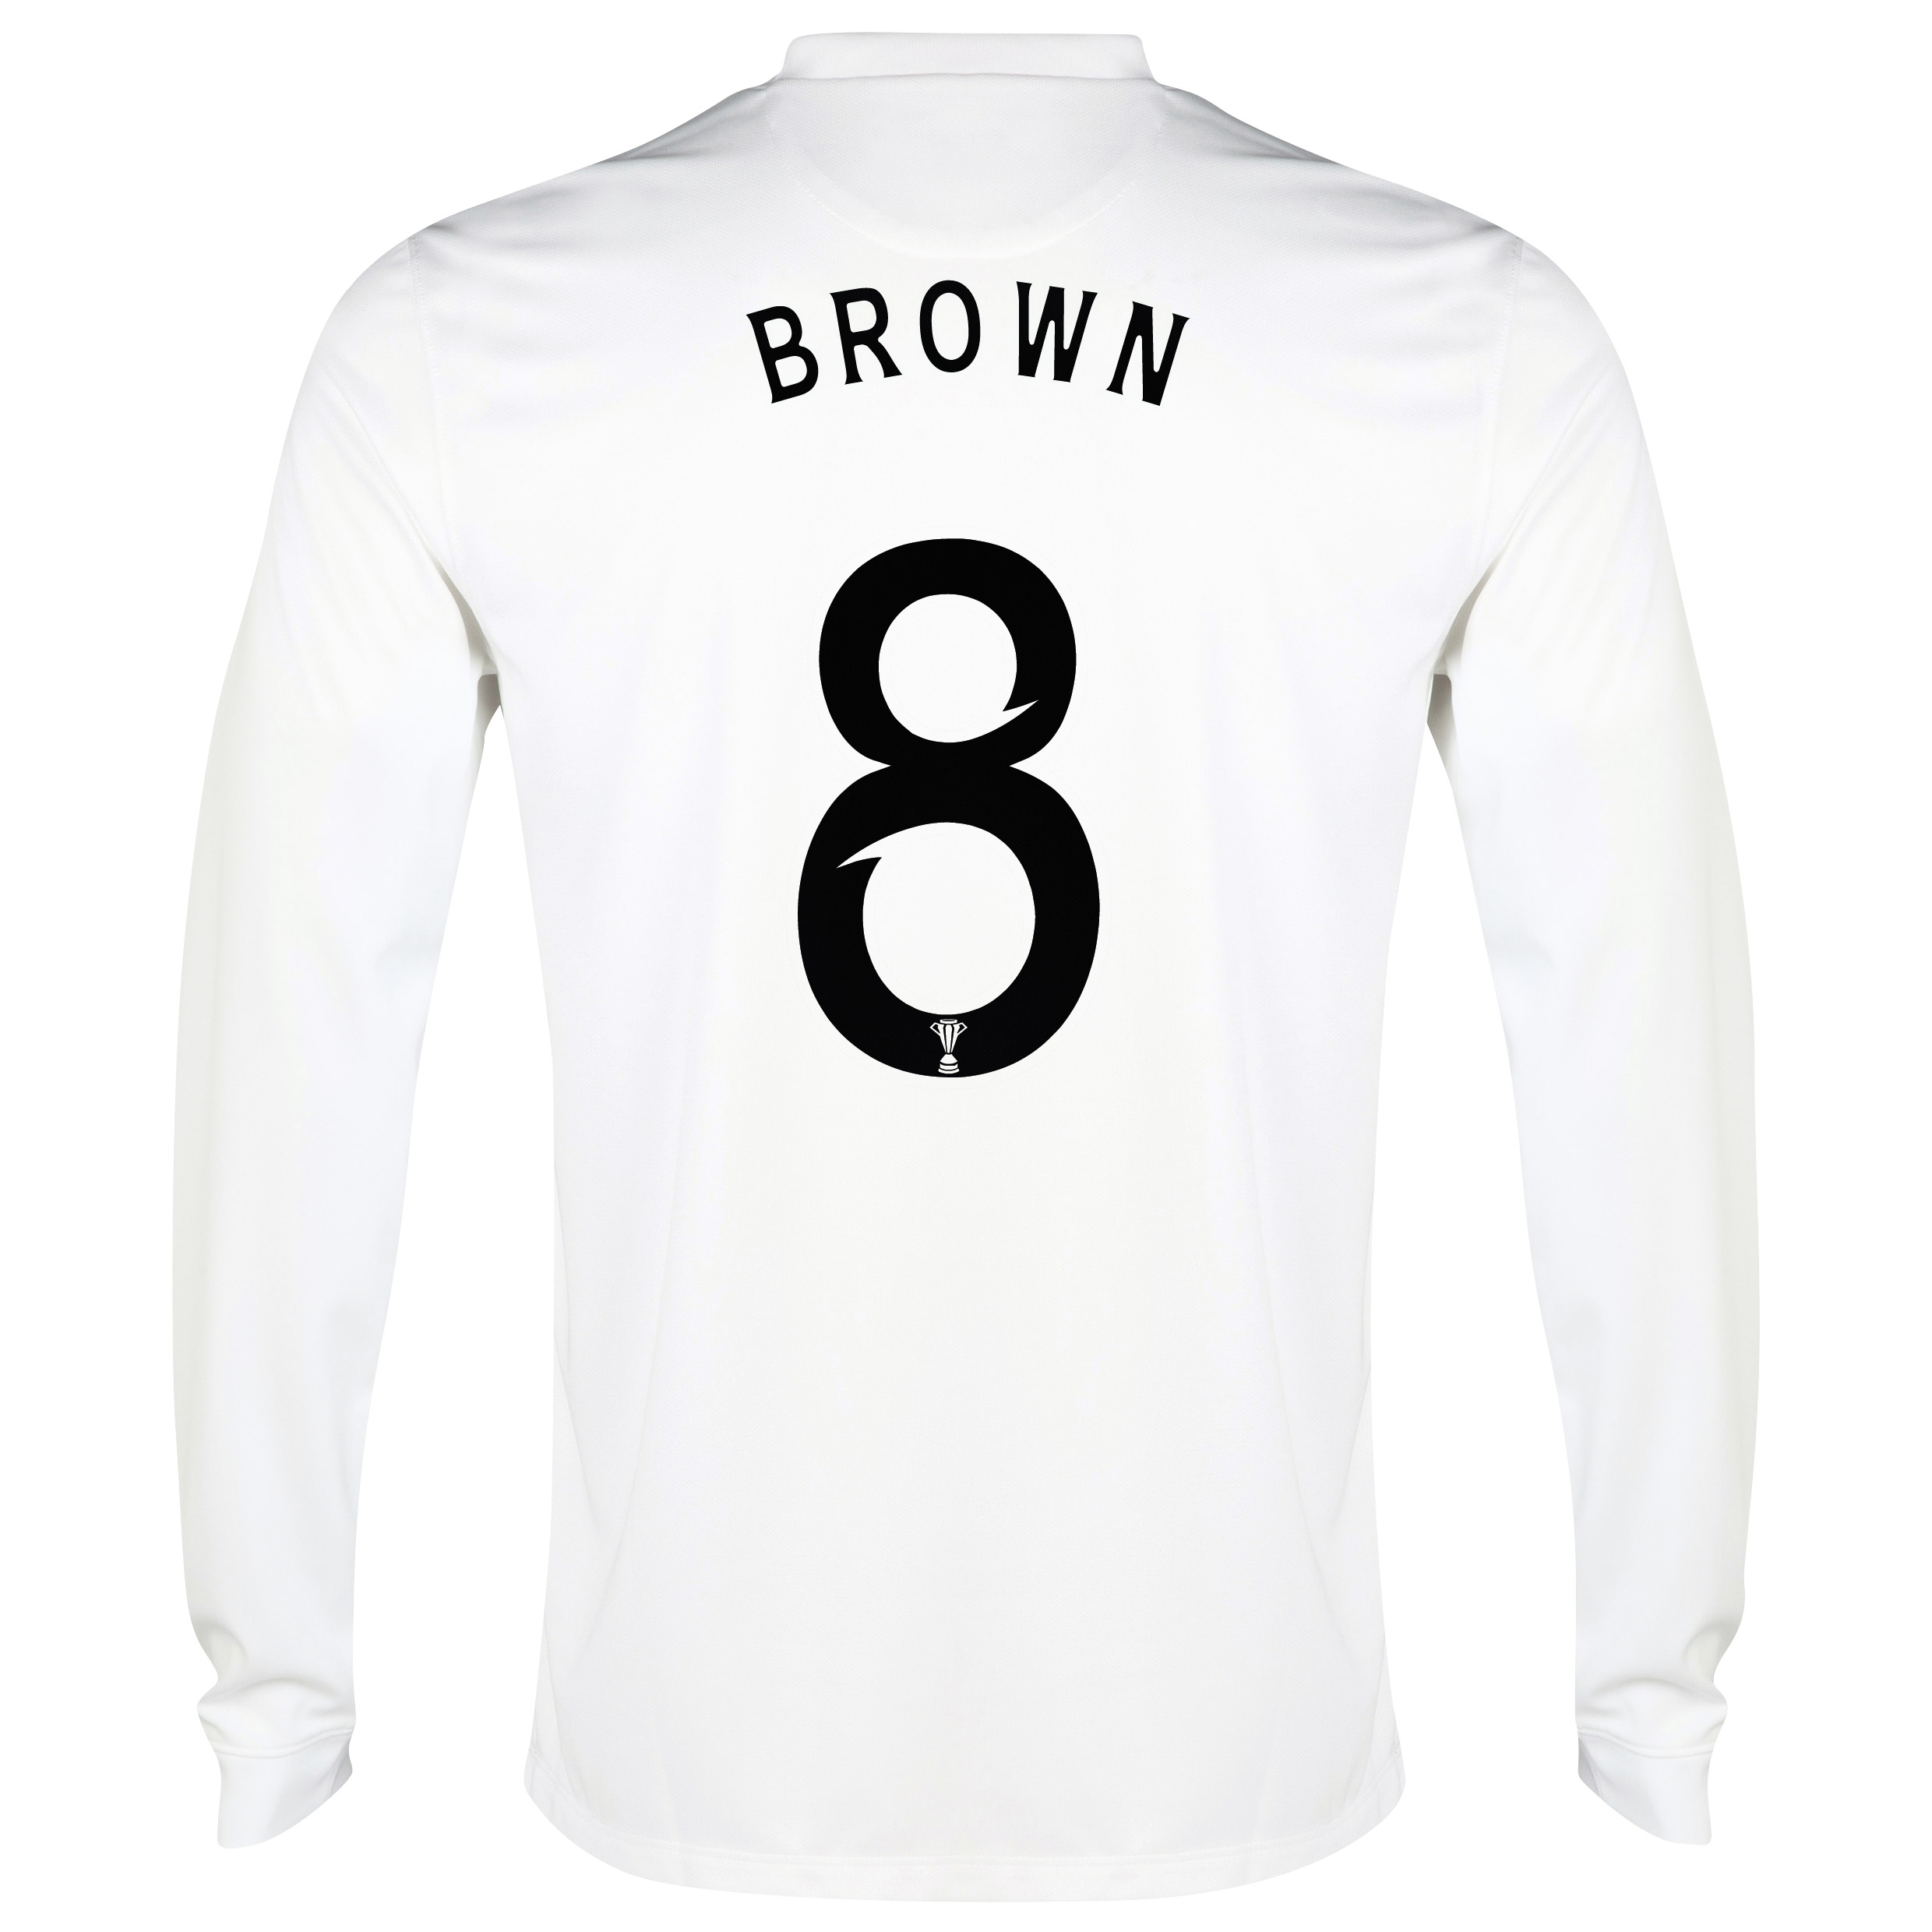 Celtic 3rd Shirt 2014/15 - Long Sleeved - Unsponsored White with Brown 8 printing